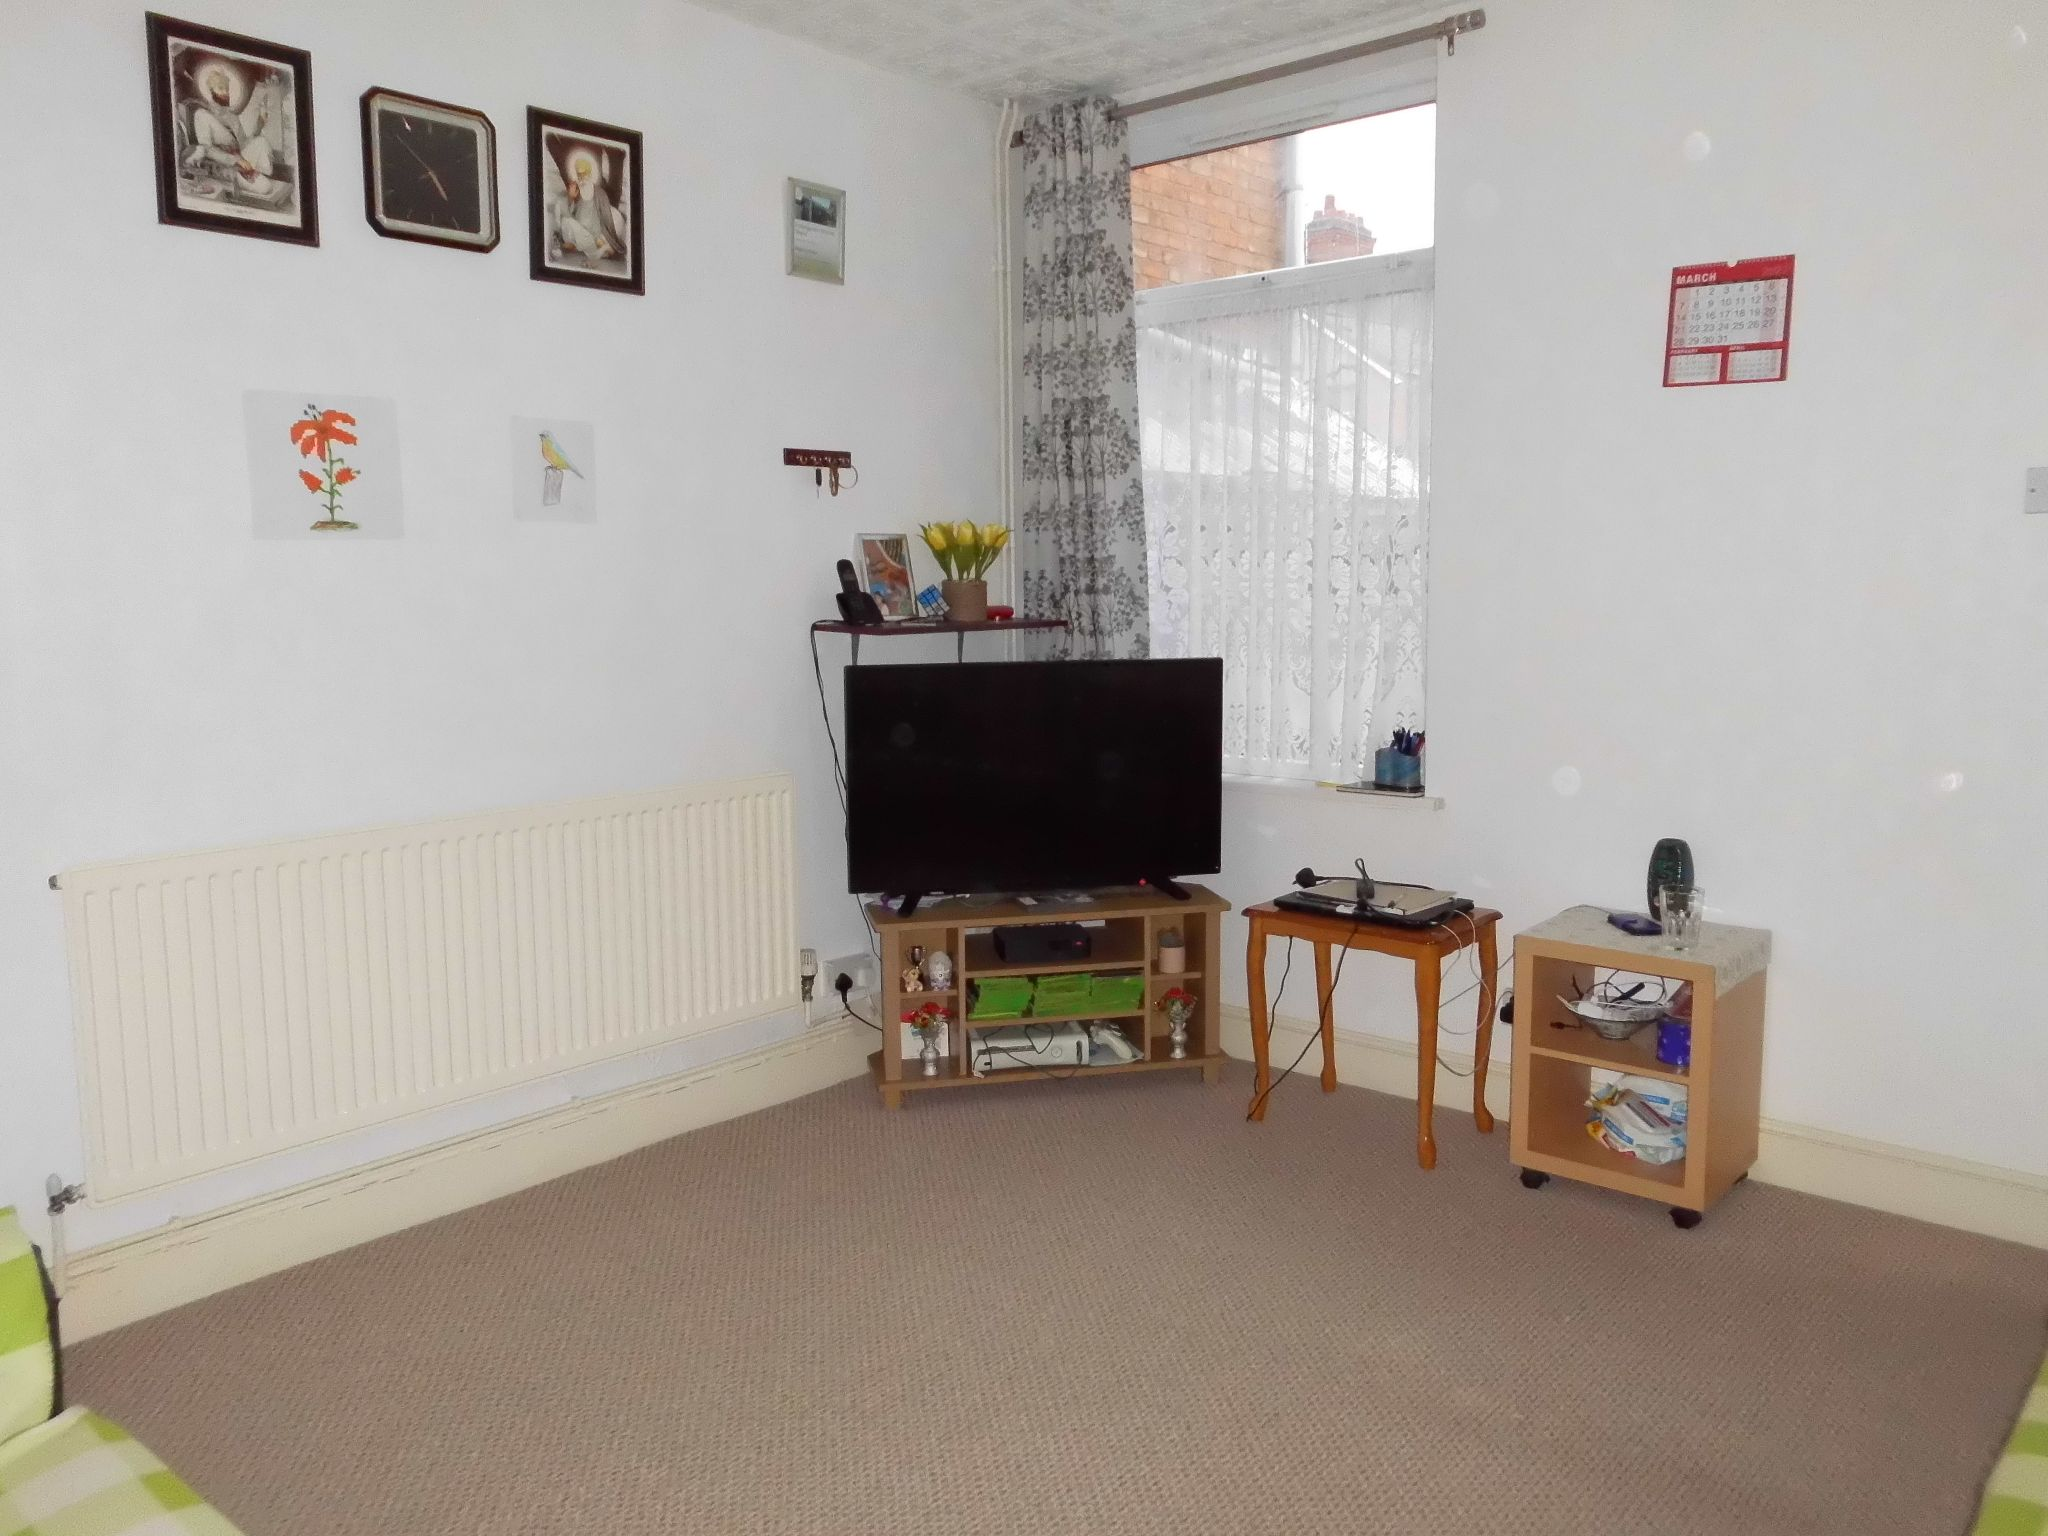 3 bedroom mid terraced house SSTC in Leicester - Photograph 4.